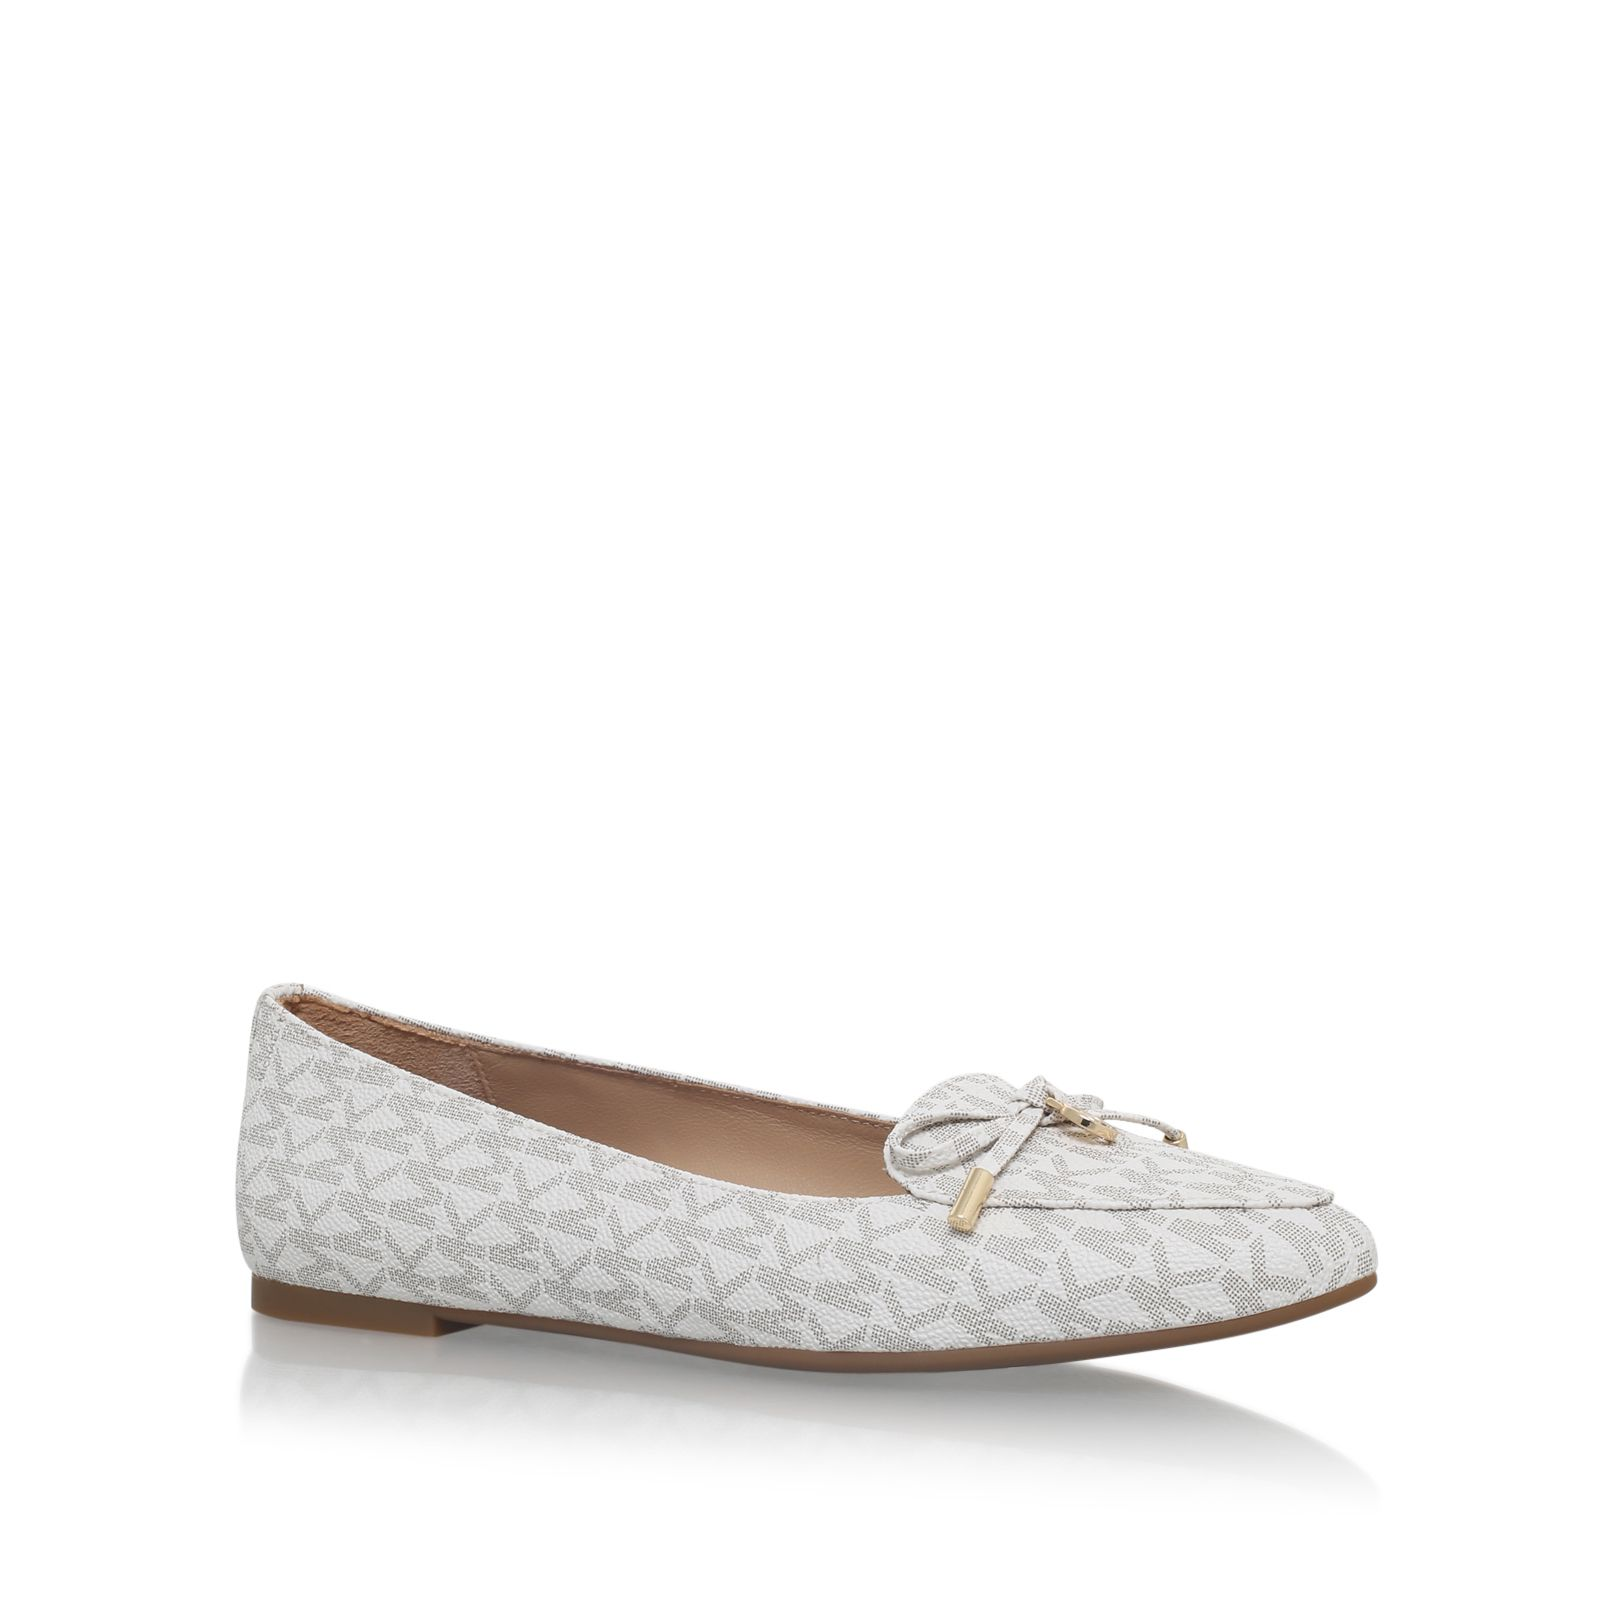 Michael Kors Nancy Flat Flat Slip Shoes House of Fraser